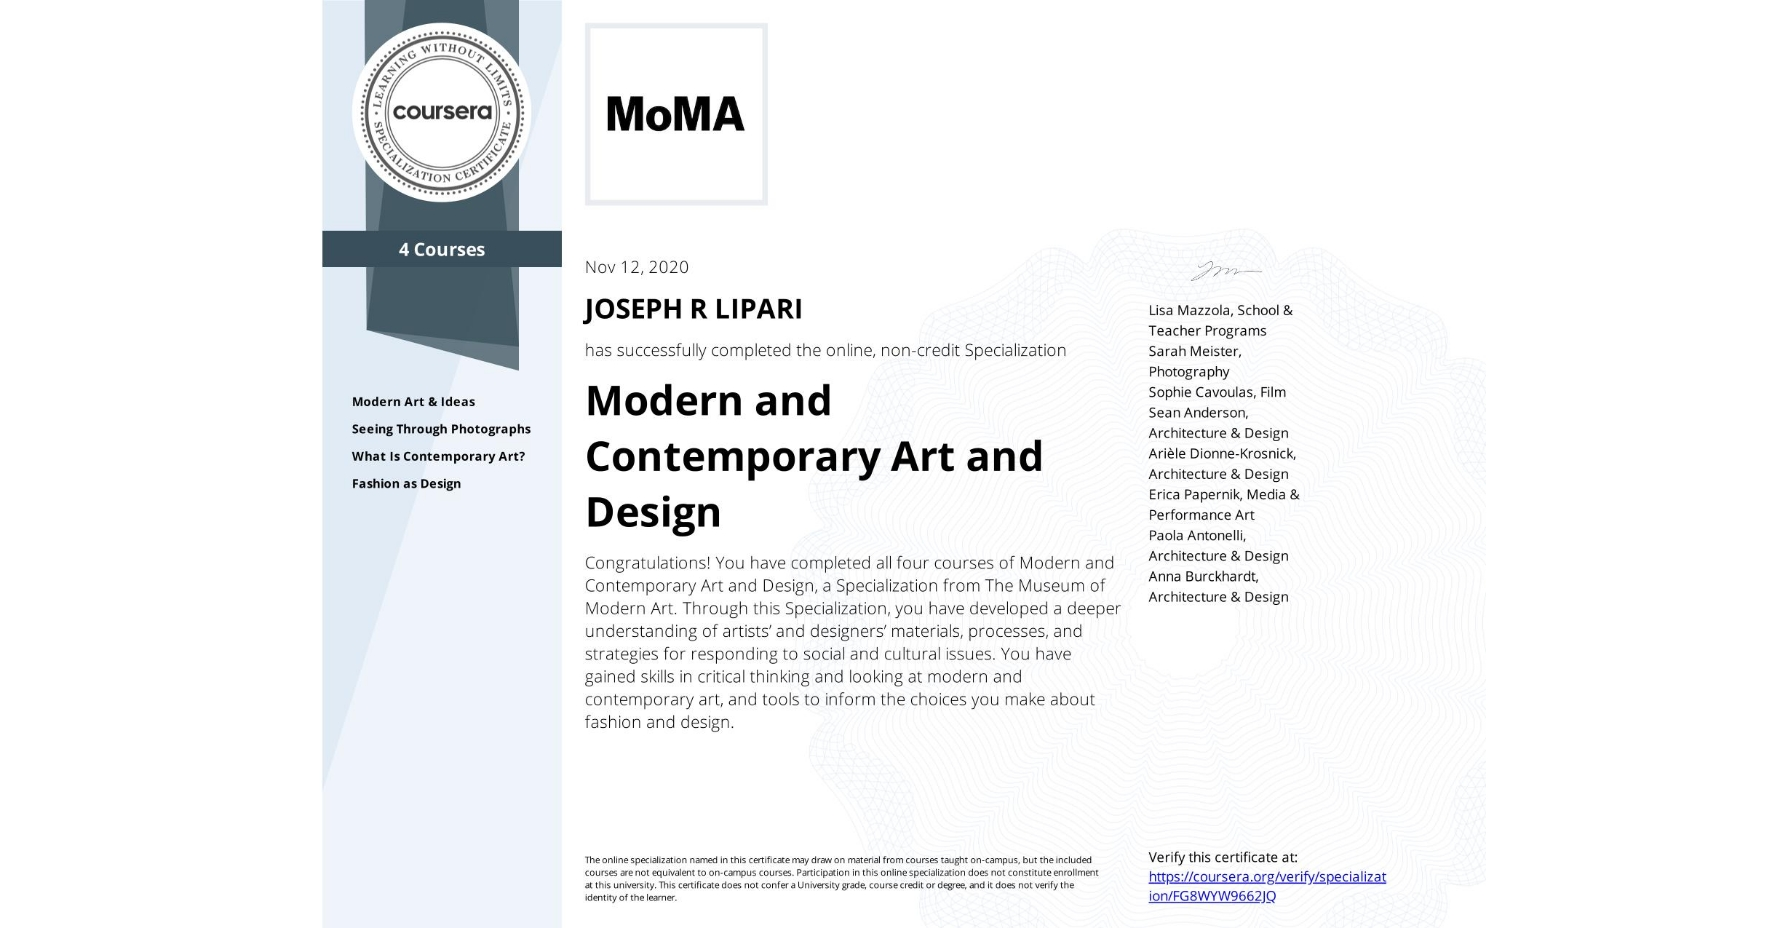 View certificate for JOSEPH R  LIPARI, Modern and Contemporary Art and Design, offered through Coursera. Congratulations! You have completed all four courses of Modern and Contemporary Art and Design, a Specialization from The Museum of Modern Art. Through this Specialization, you have developed a deeper understanding of artists' and designers' materials, processes, and strategies for responding to social and cultural issues. You have gained skills in critical thinking and looking at modern and contemporary art, and tools to inform the choices you make about fashion and design.